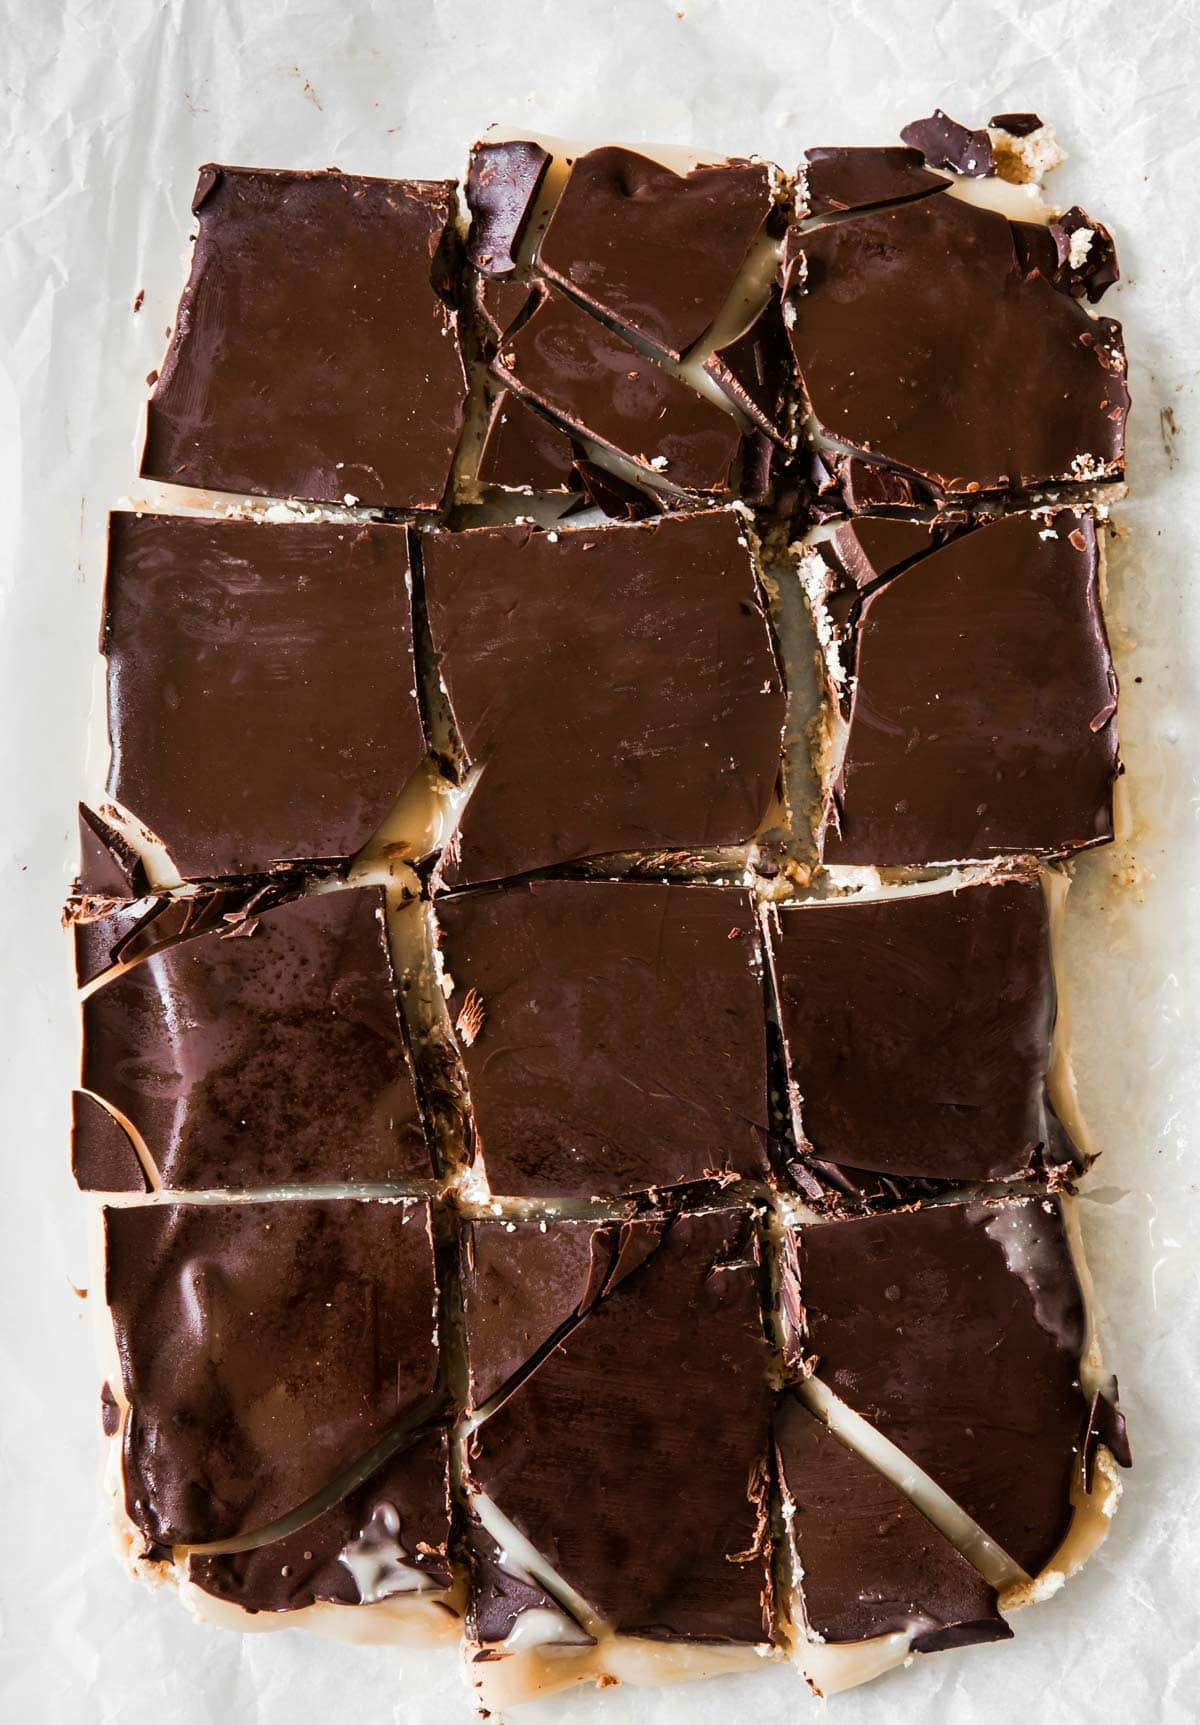 caramel slice squares topped with a chocolate layer on parchment paper